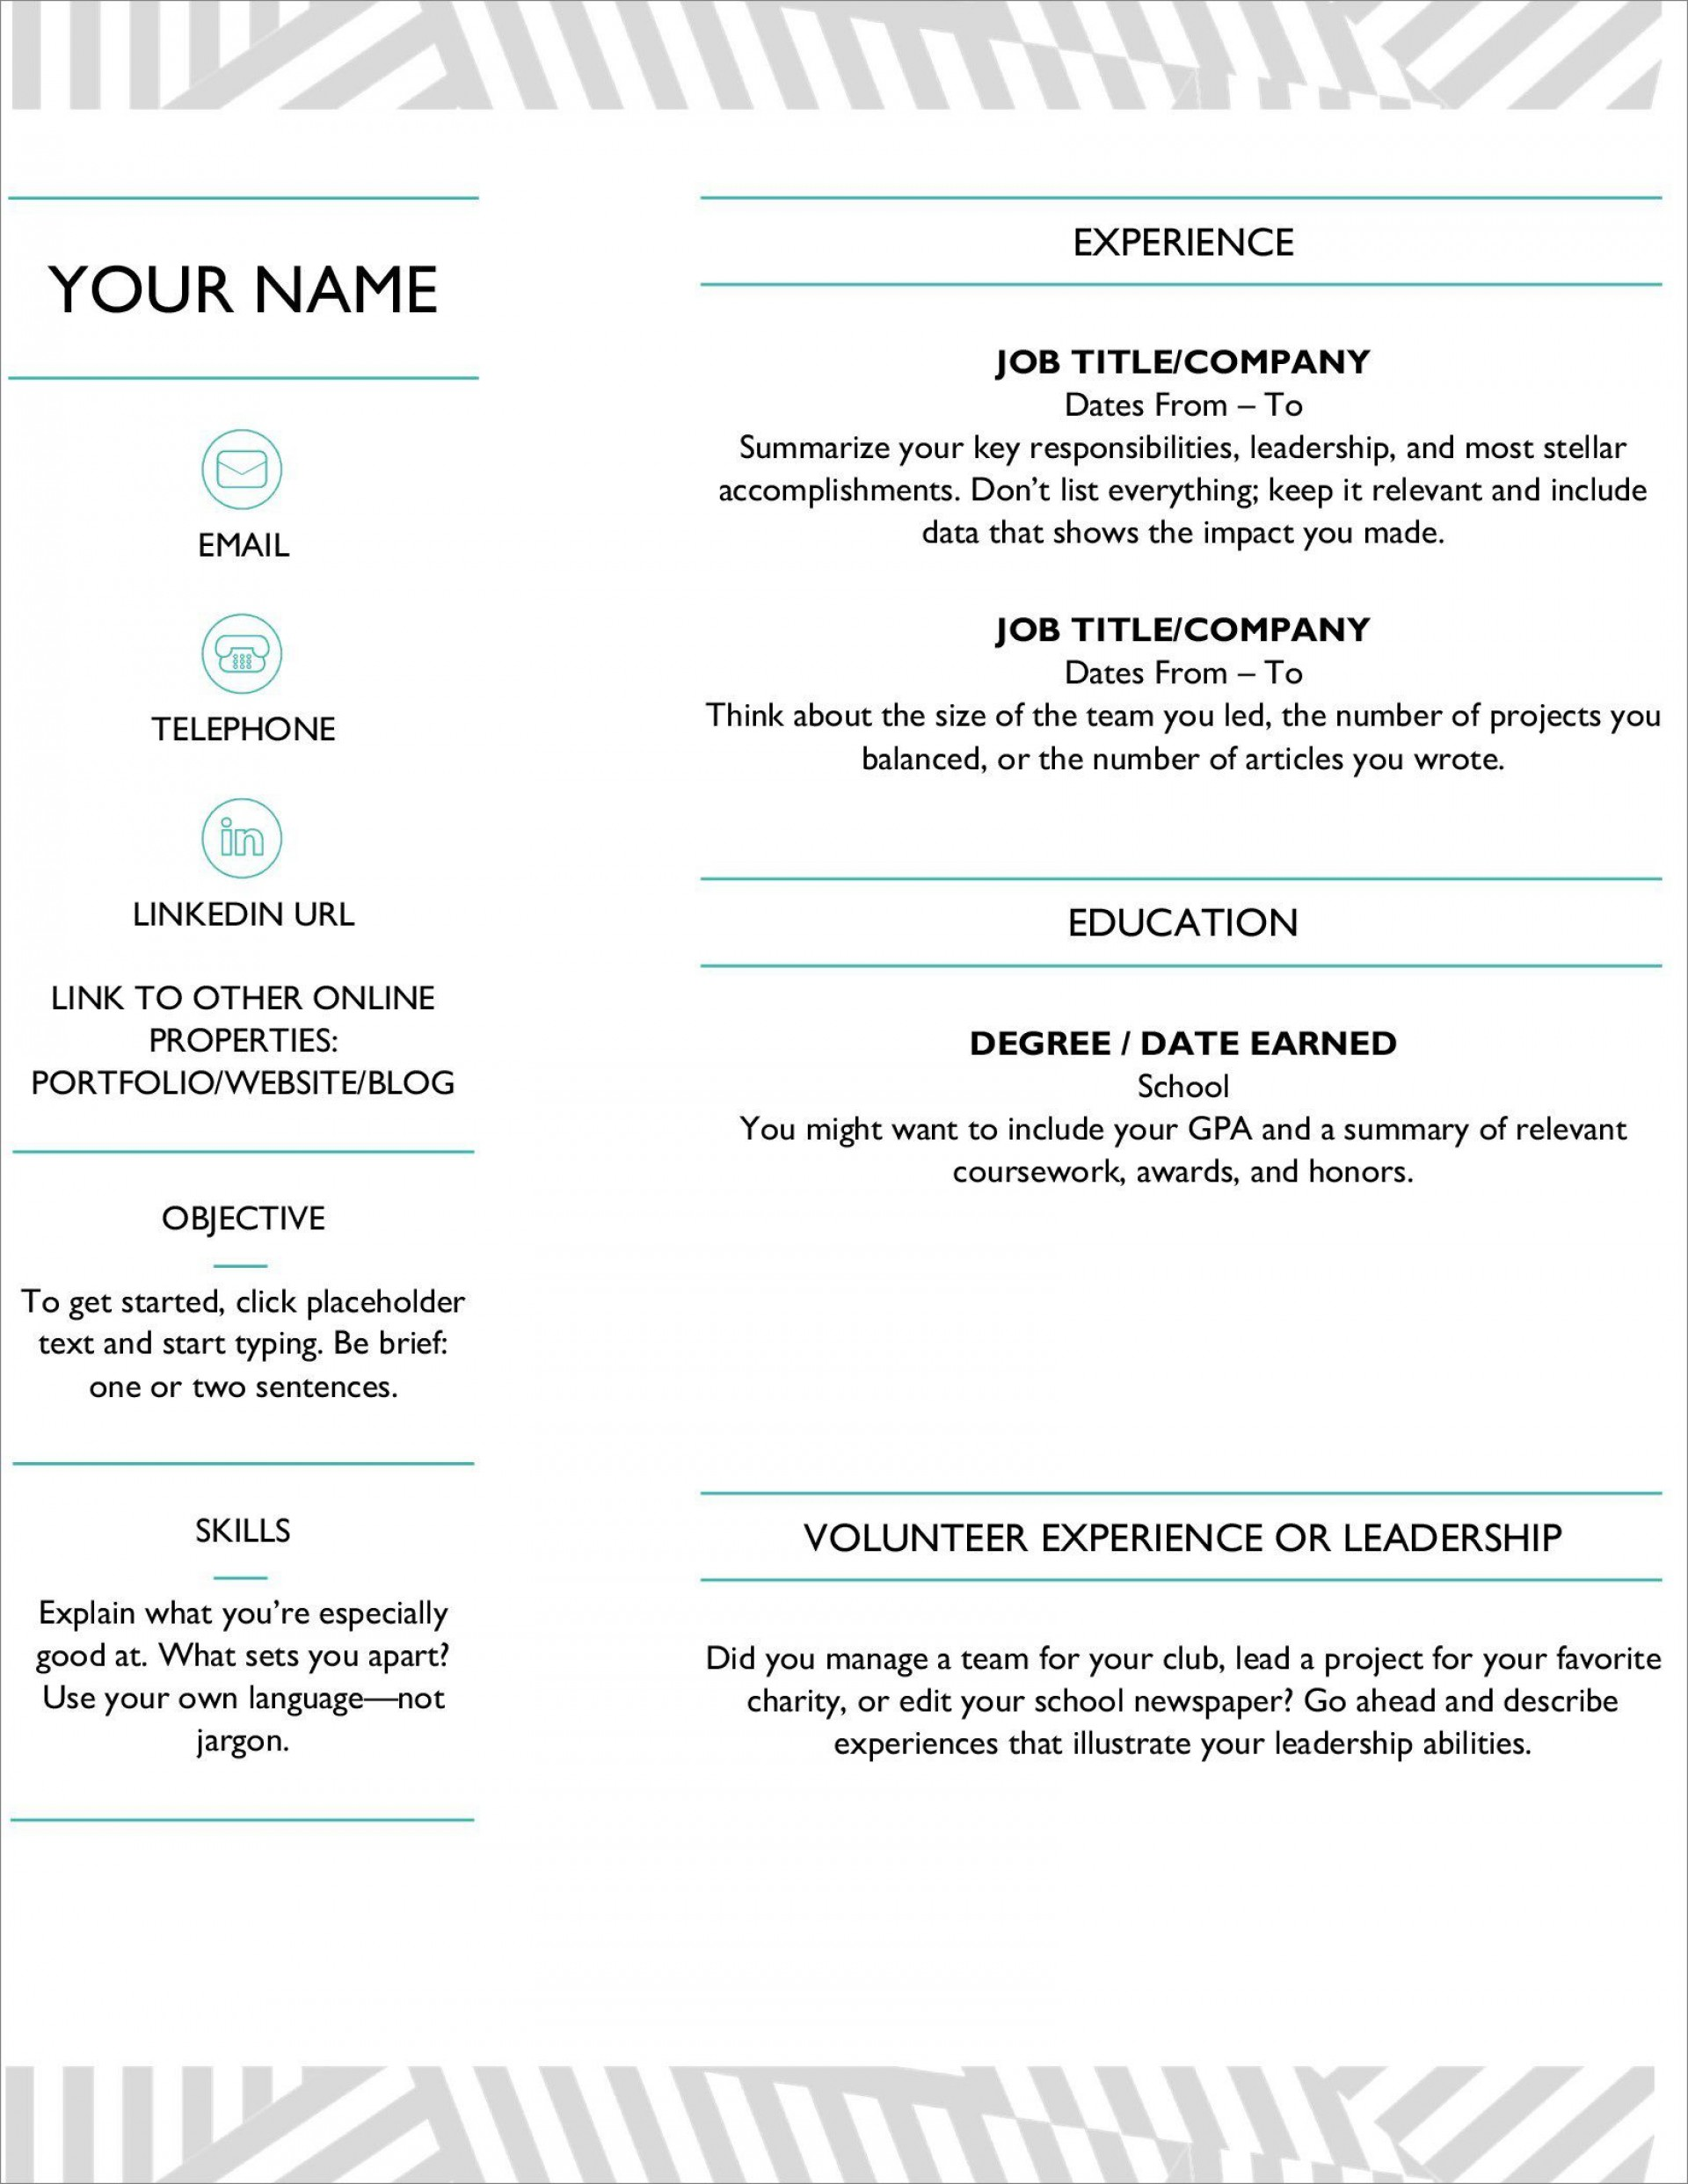 006 Fascinating Professional Resume Template Word High Resolution  Microsoft Download Free 2010 20191920